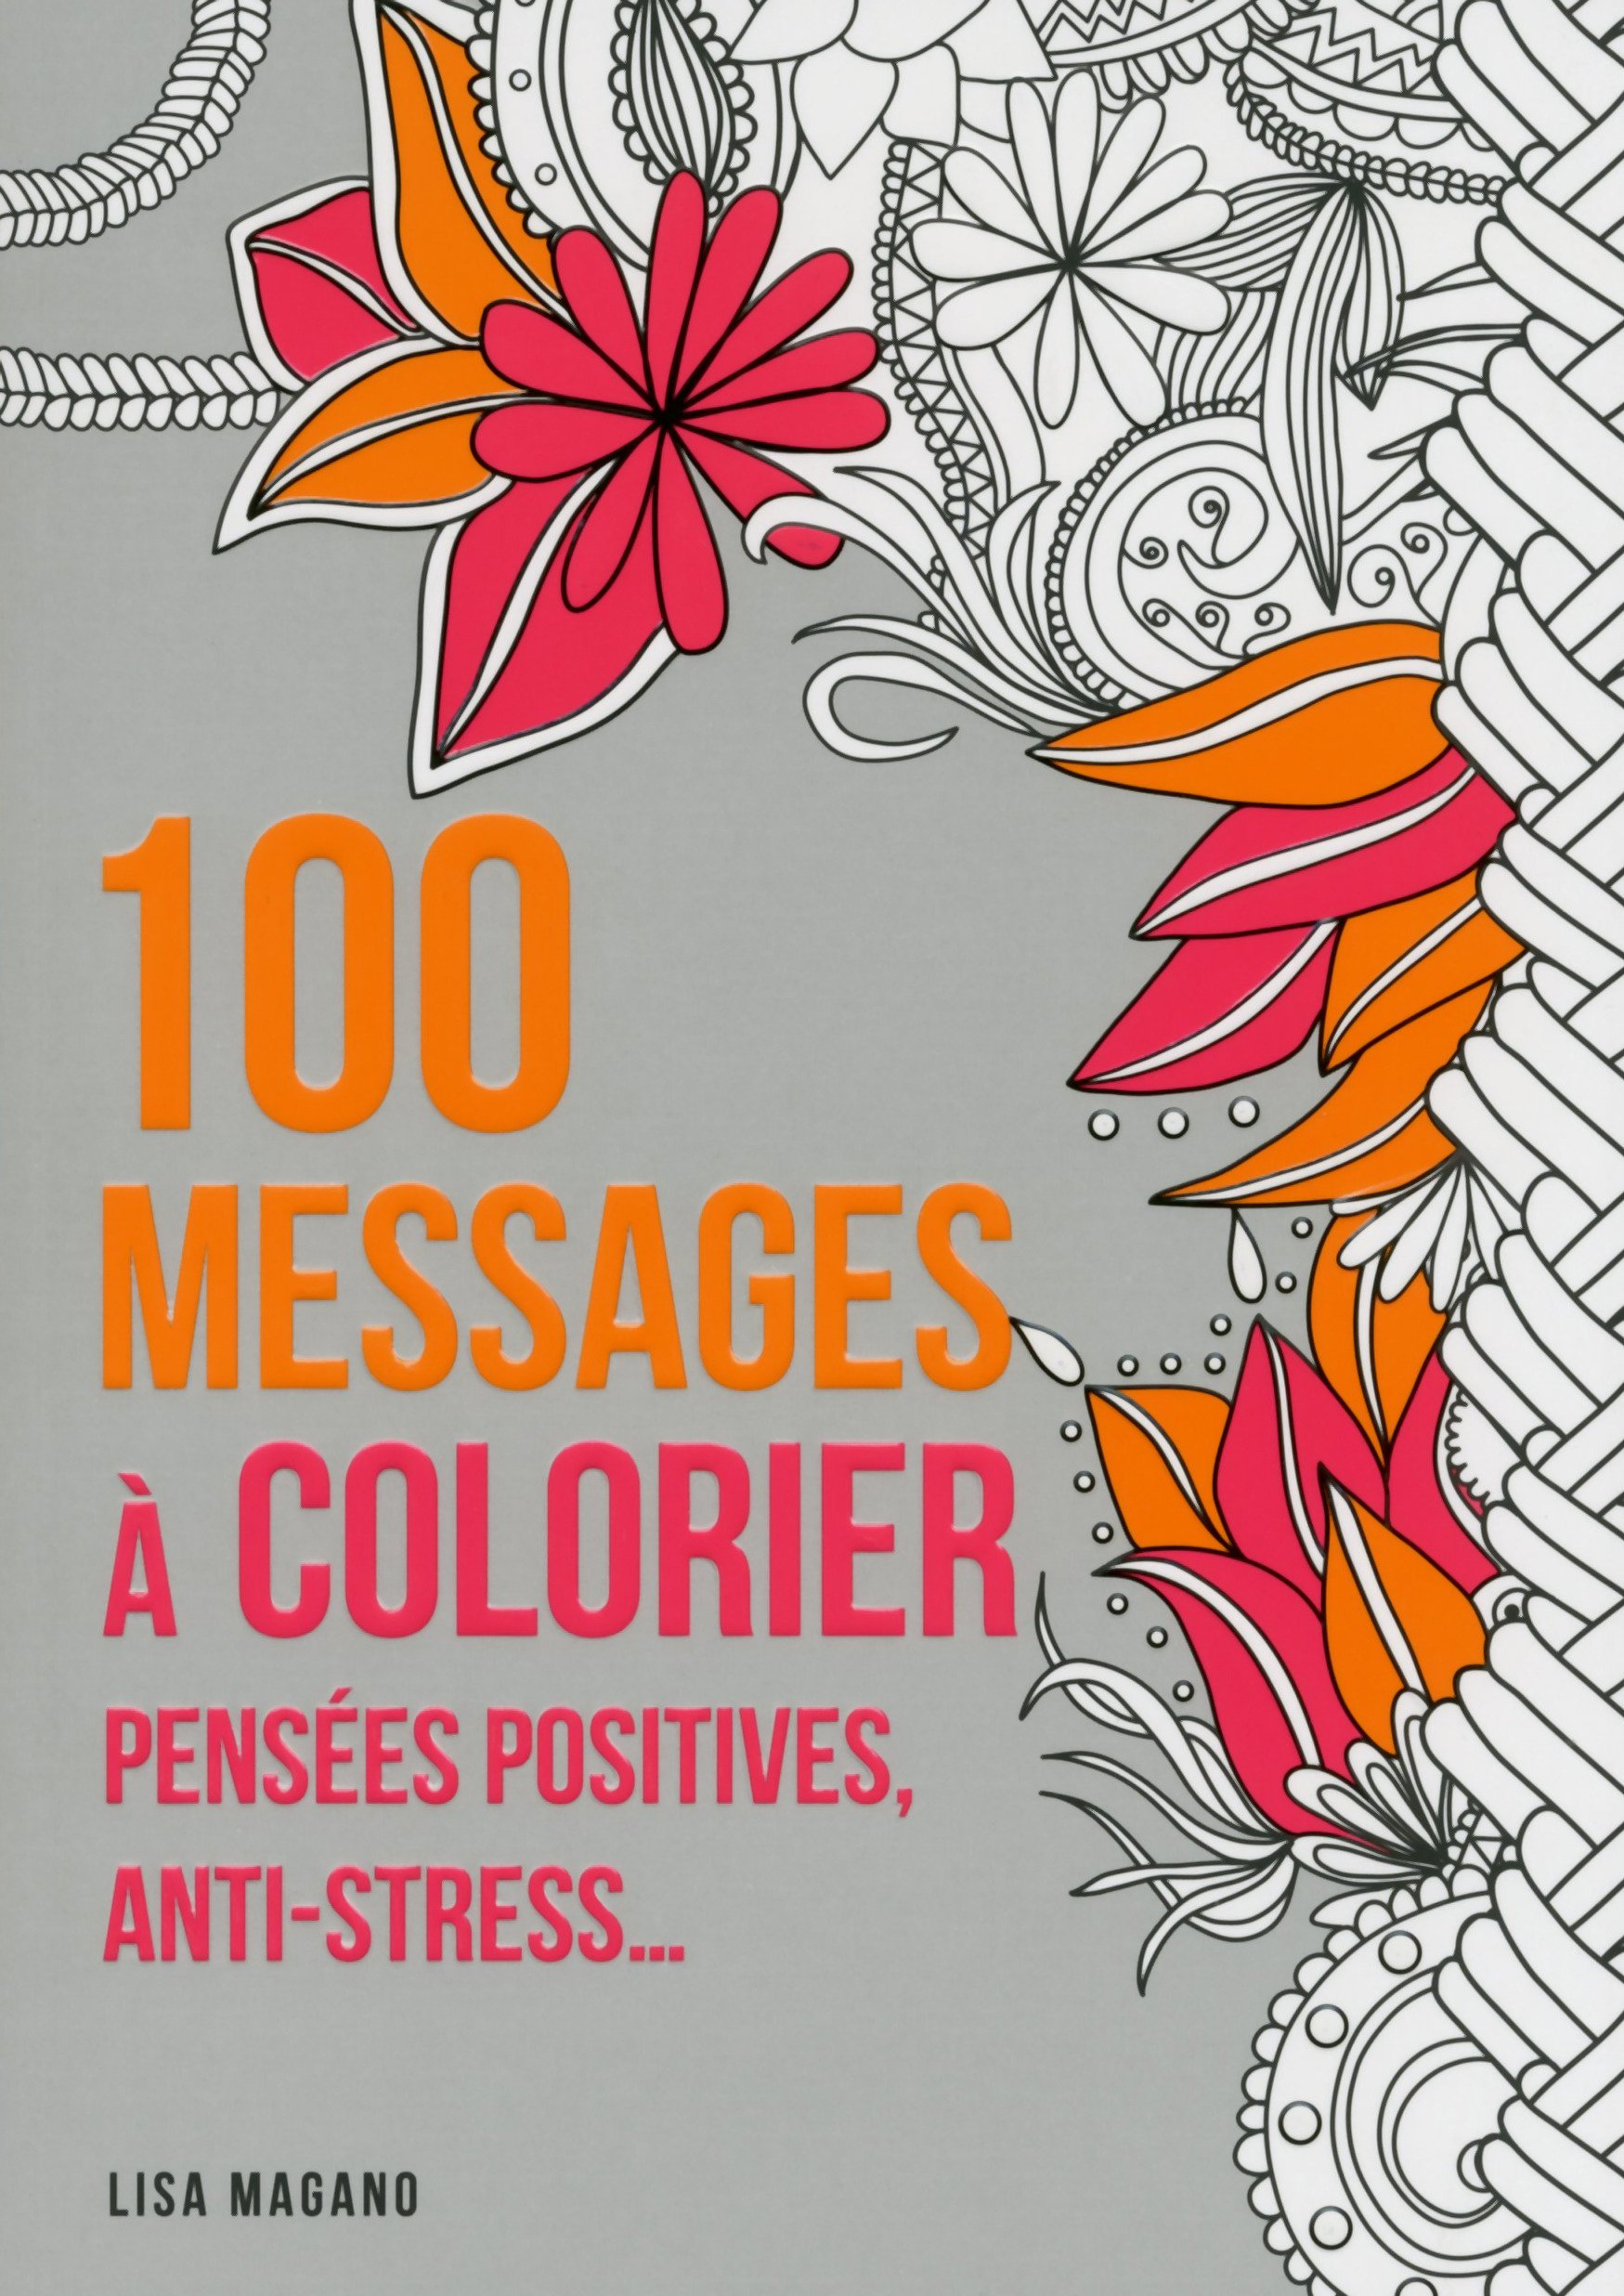 100 messages  colorier pensees positives anti stress French Edition Lisa Magano First Amazon Books